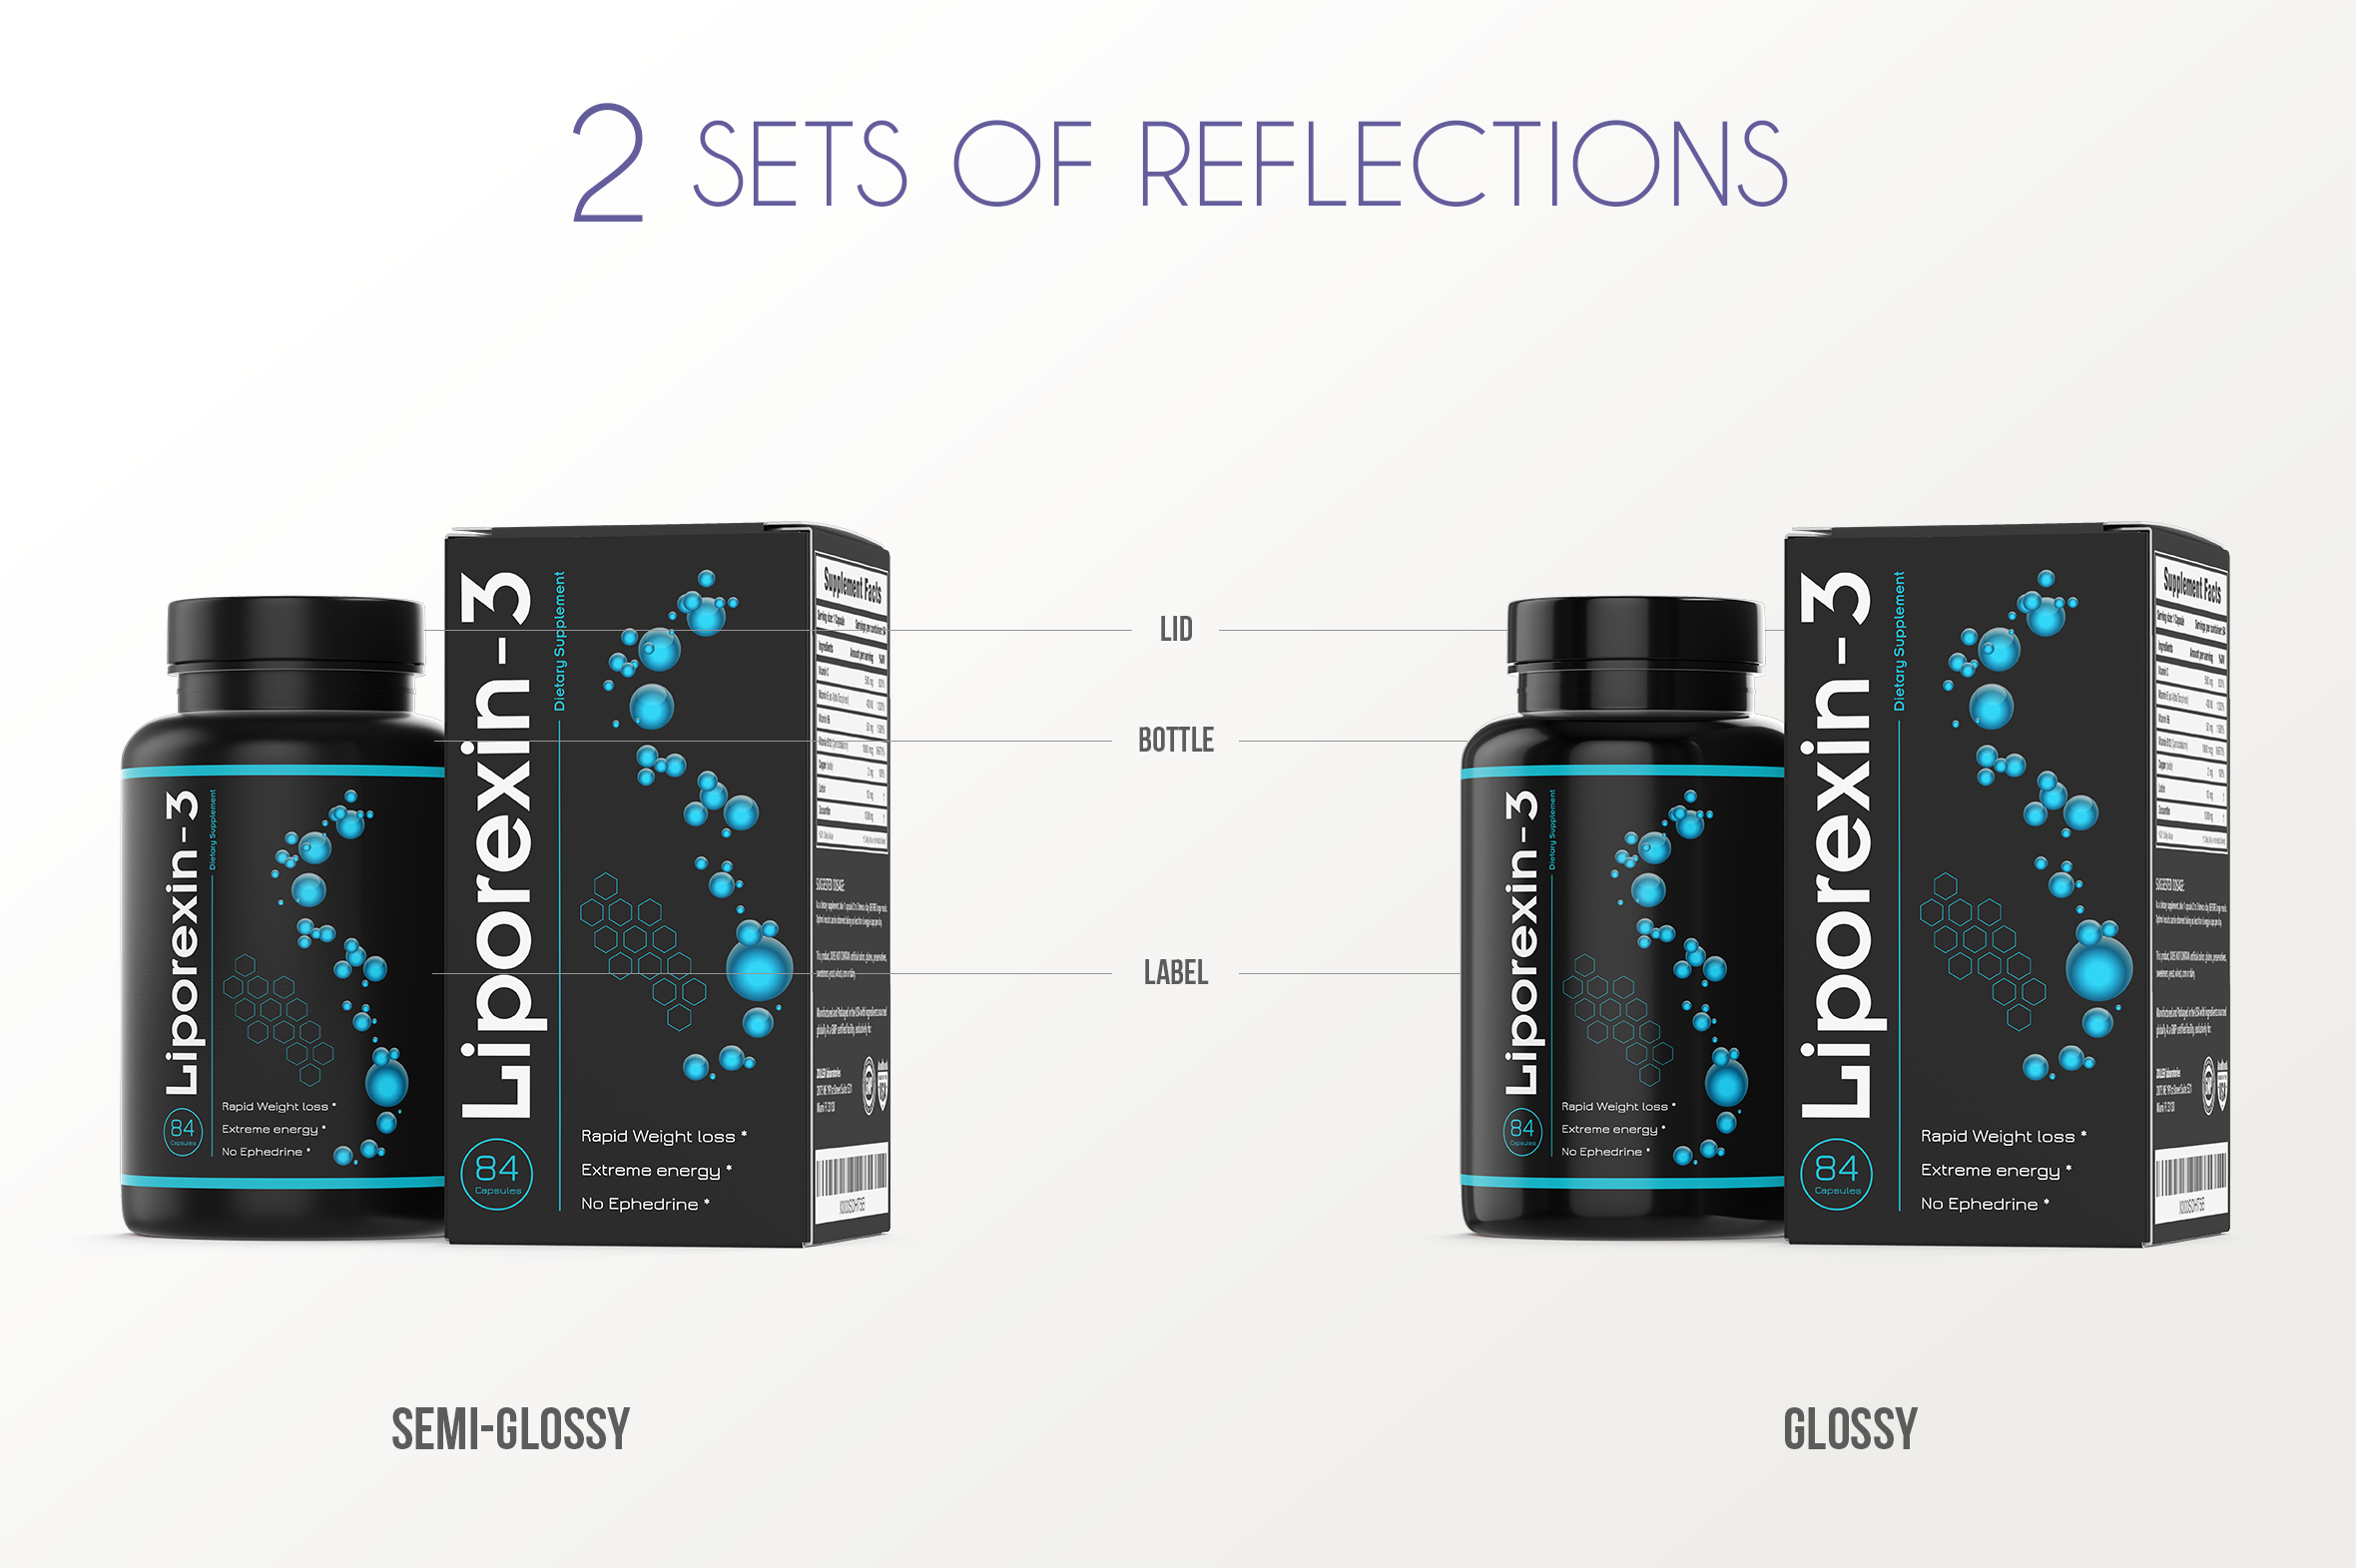 Dietary Supplement Mockup v. 1C example image 4